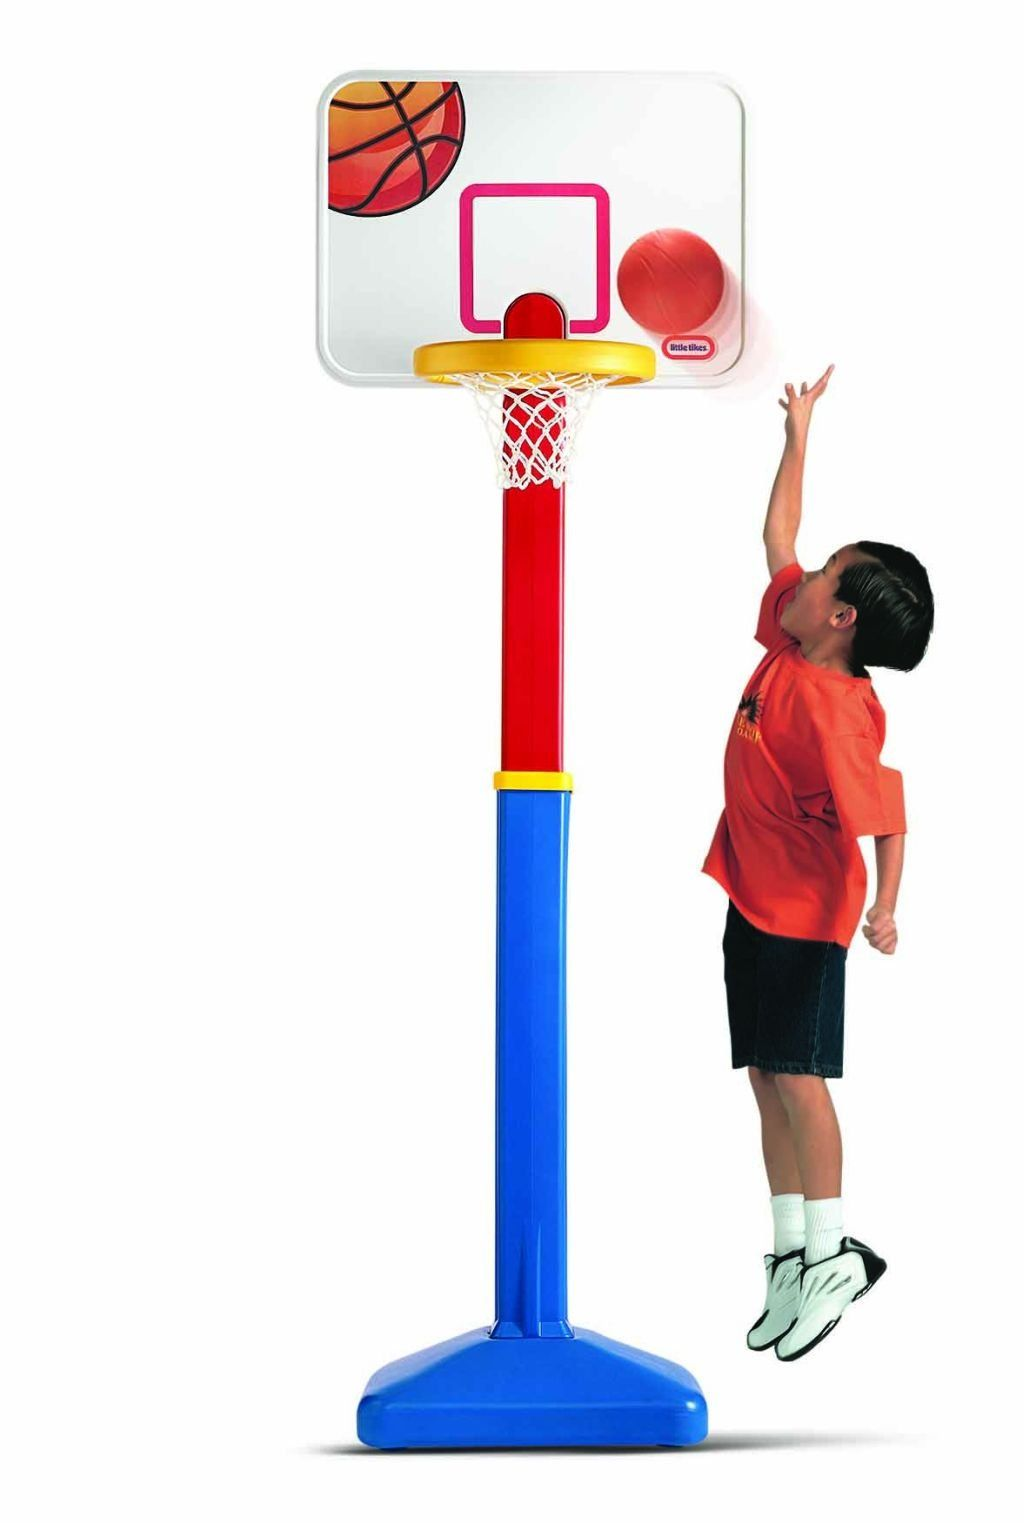 Little Tikes Adjust N Jam Basketball Set 5 Height Adjustments From 4 6 Feet Tall Indoor Or Outdoor Use Includes A Breakaway Rim